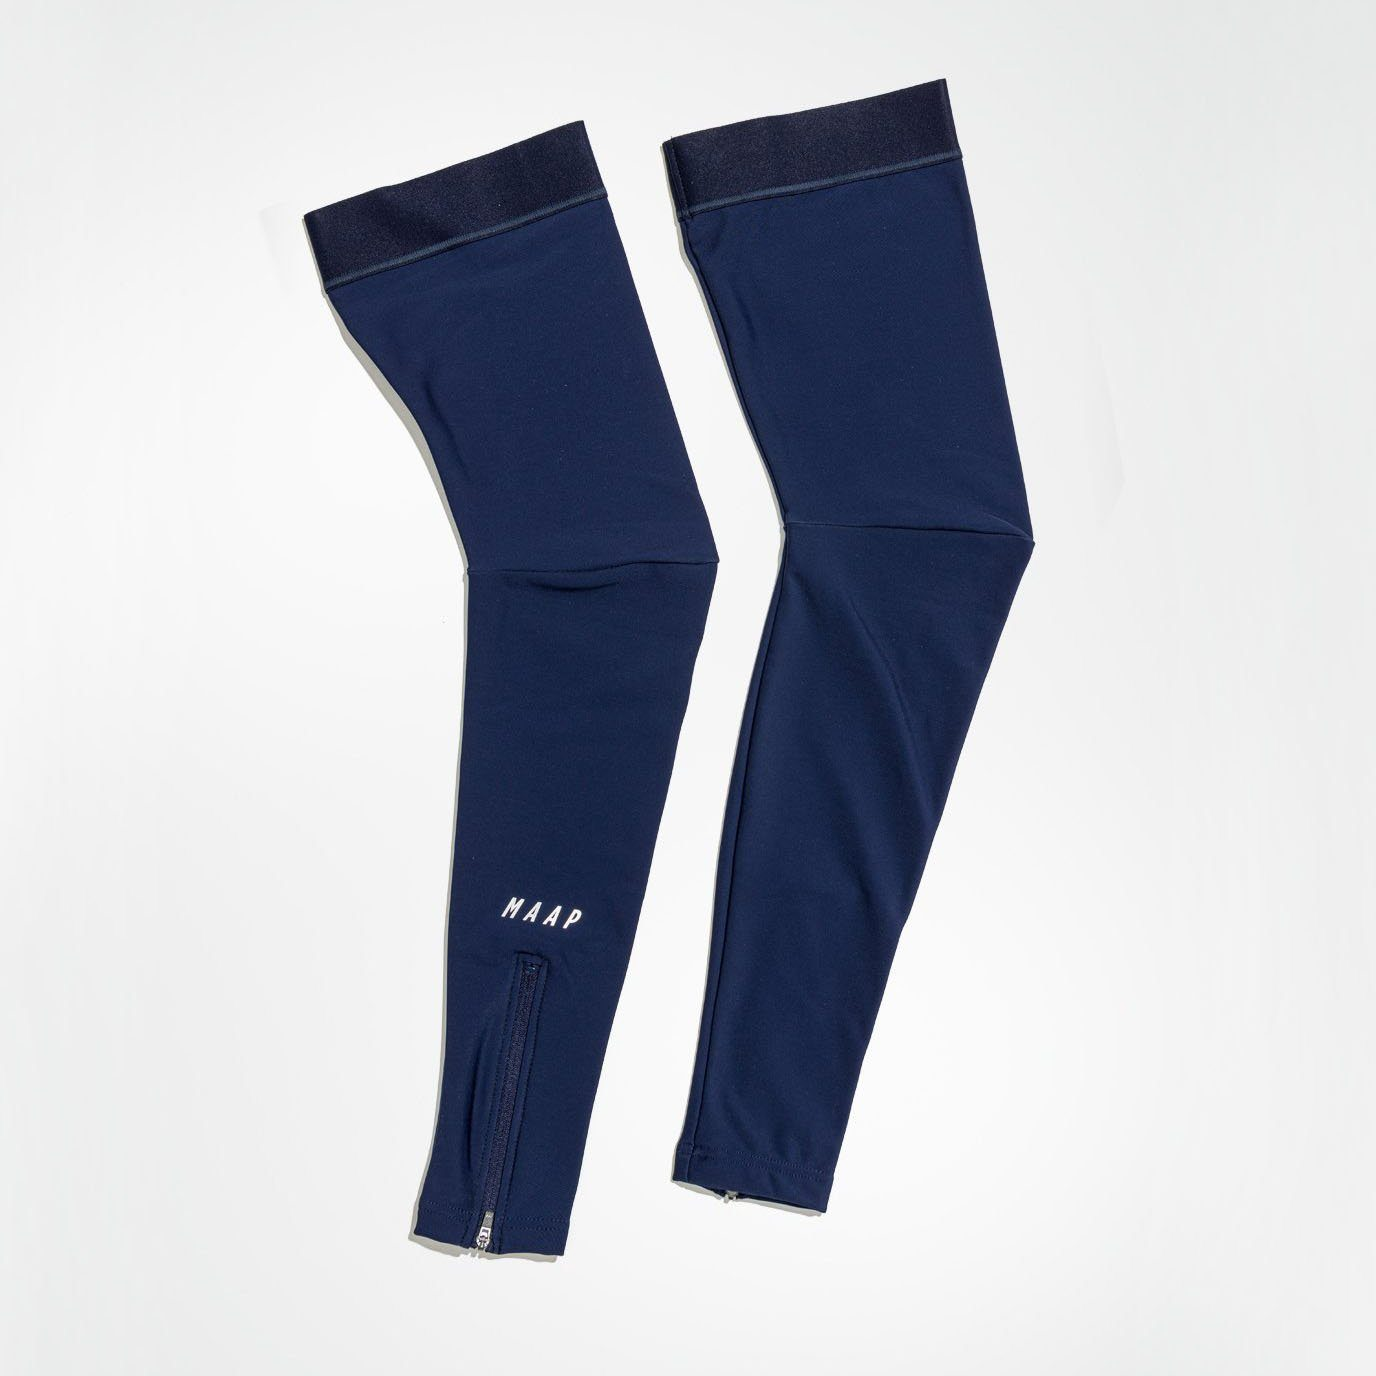 Base Leg Warmers - Navy